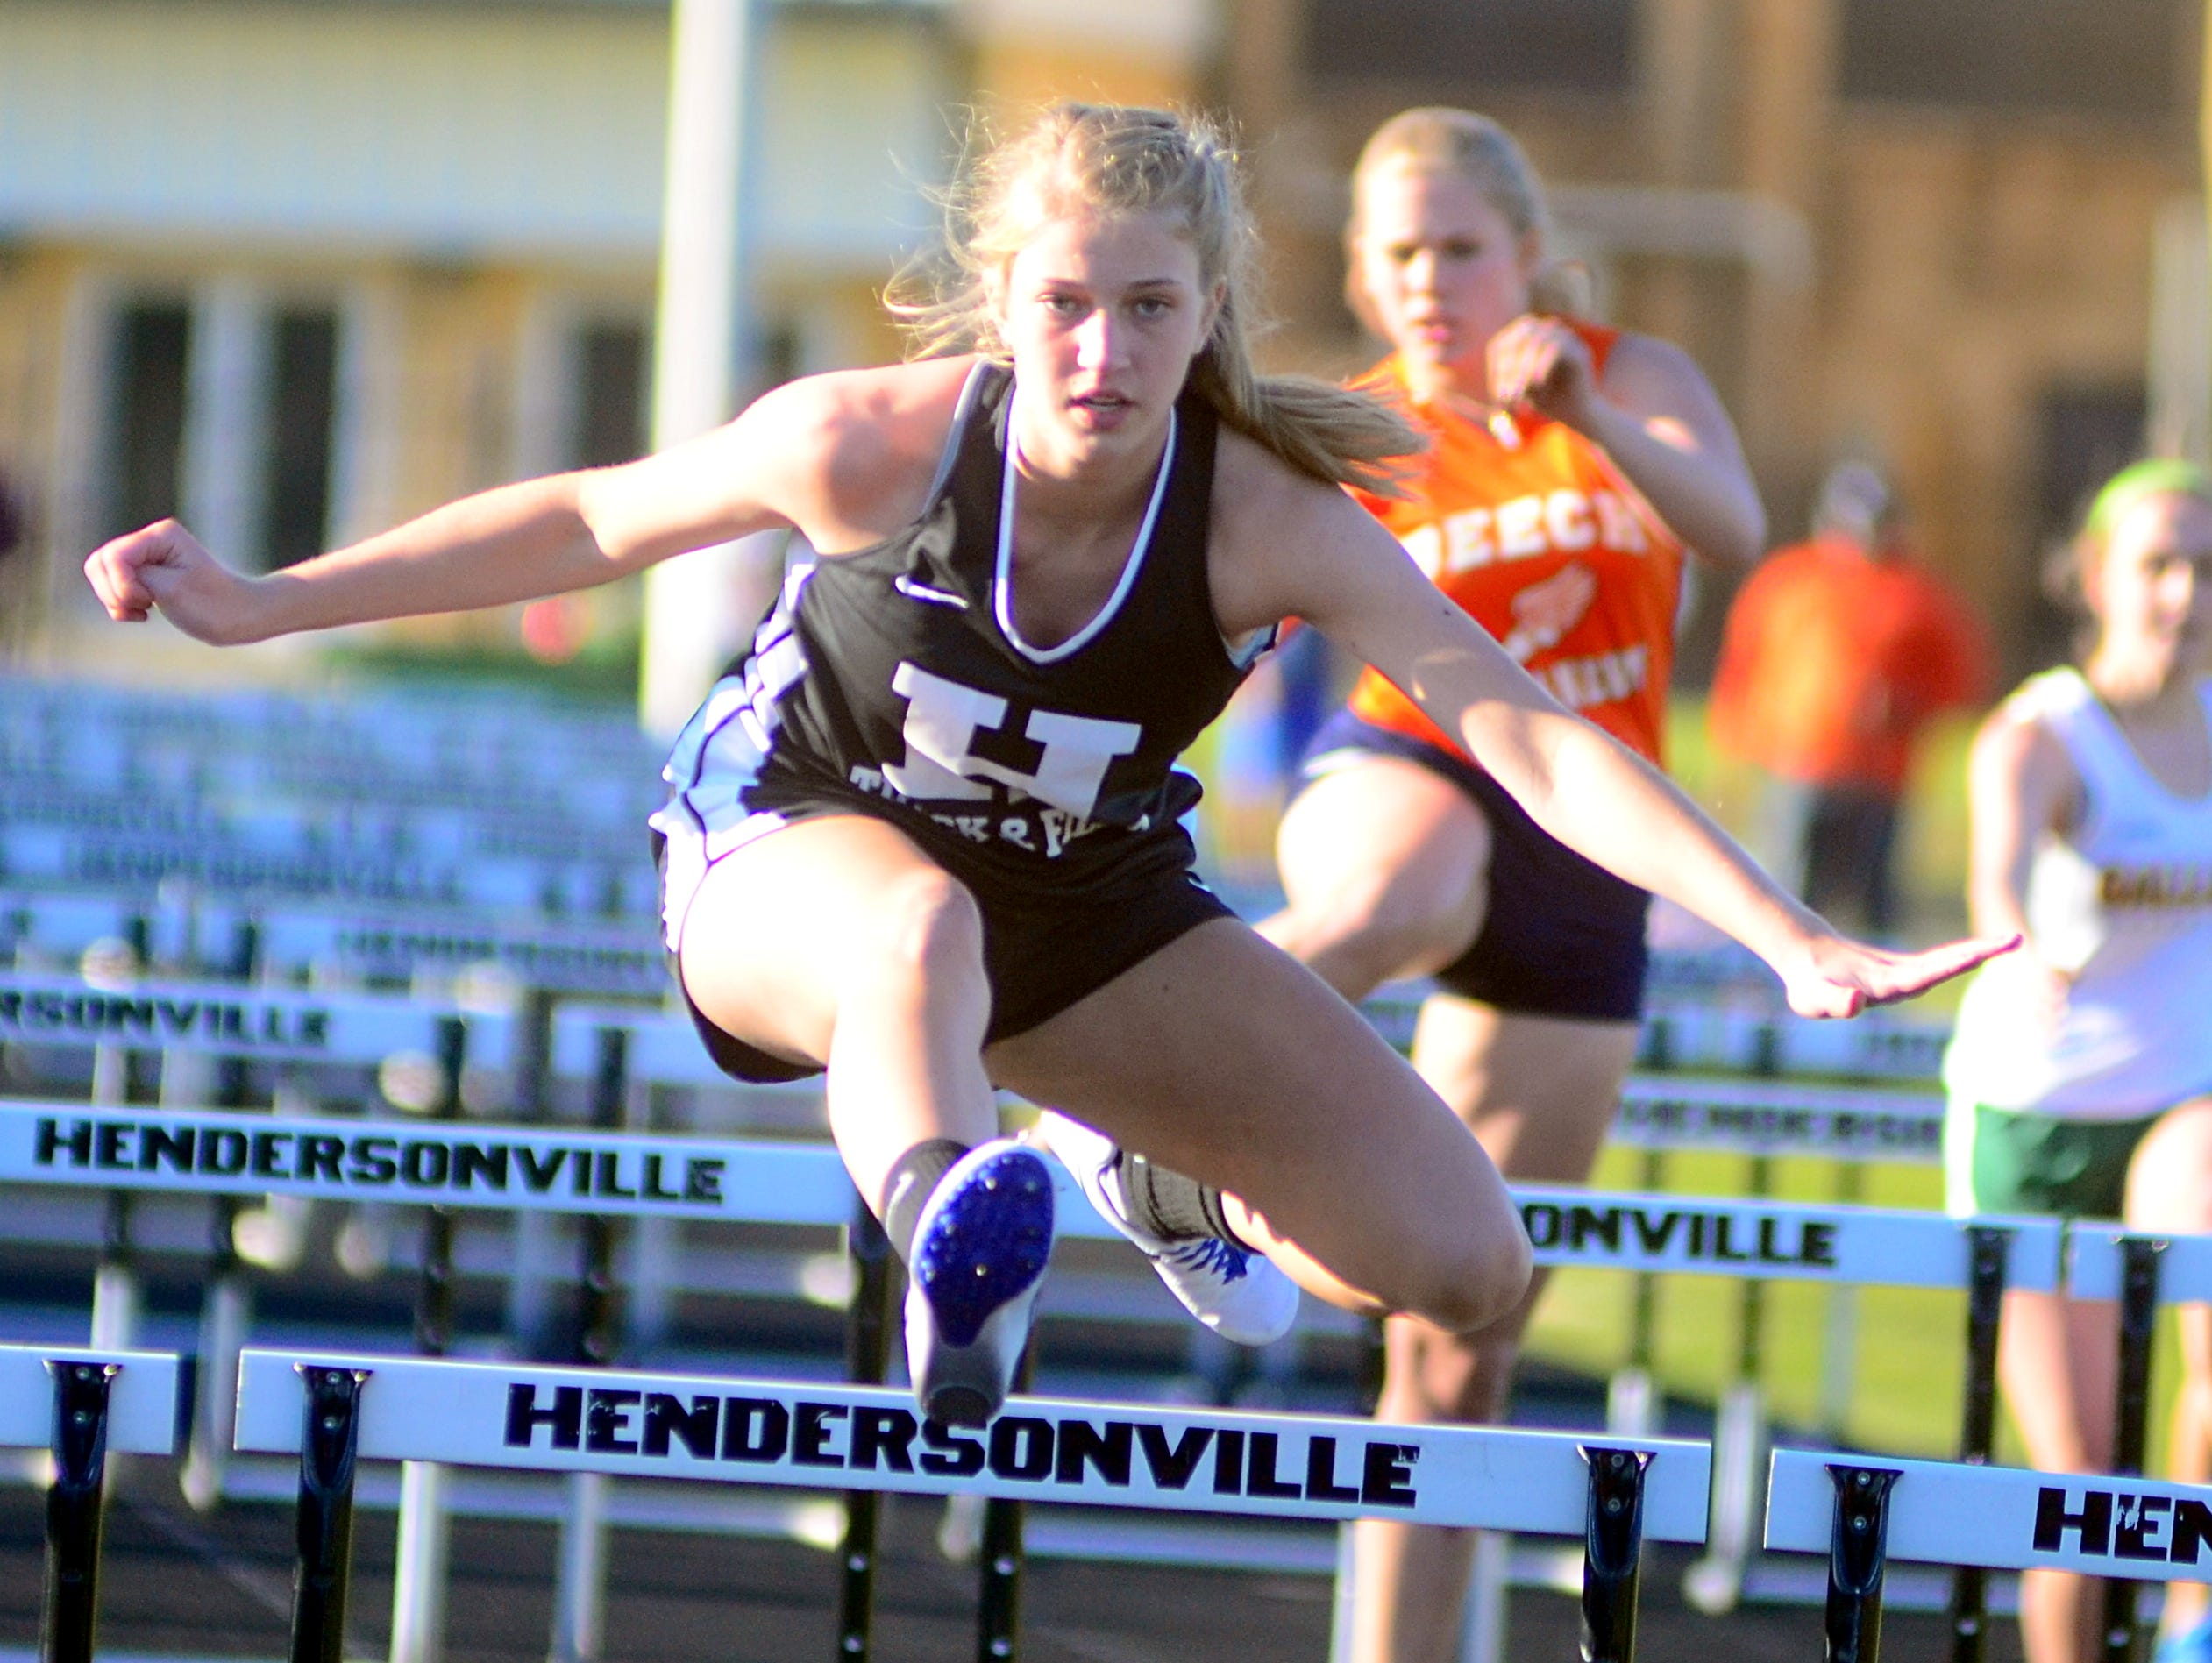 Hendersonville High sophomore Brooke Long runs in a 100-meter hurdles qualifying heat. Long won the girls' high jump with a best effort of 4 feet, 9 inches.